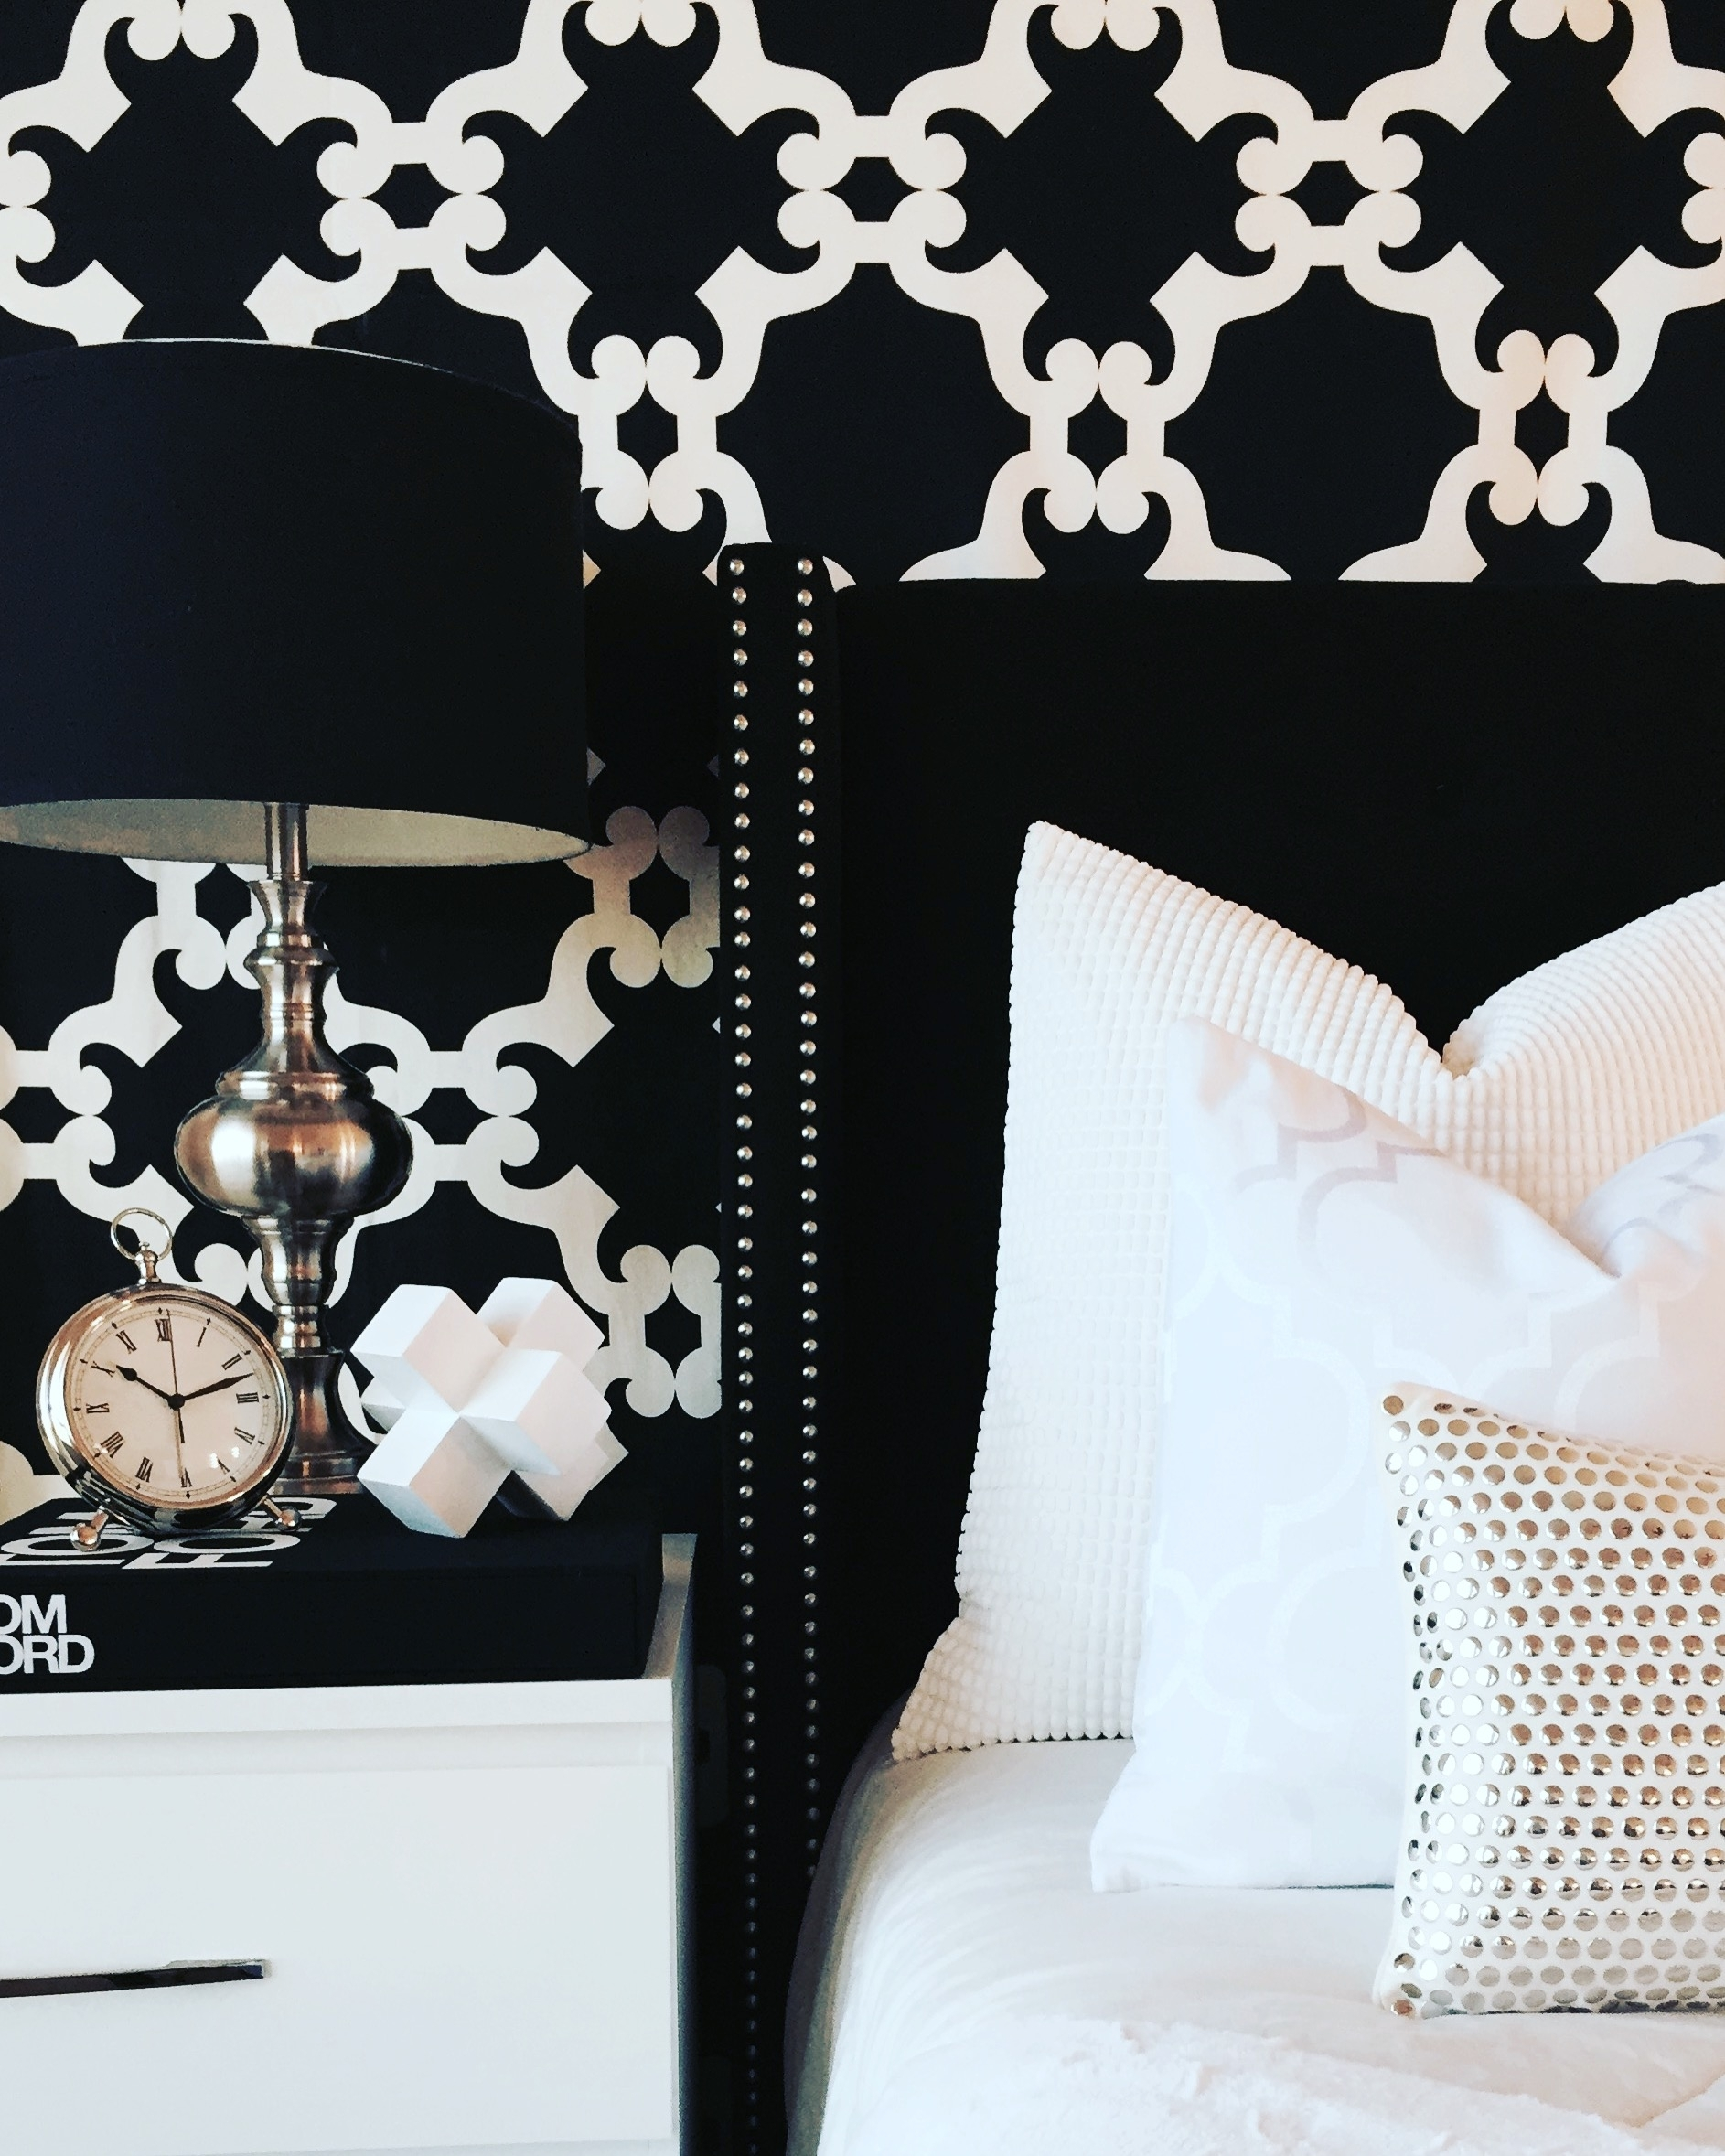 Interior Design - Classic Black and White tones make any decor chic and sophisticated.